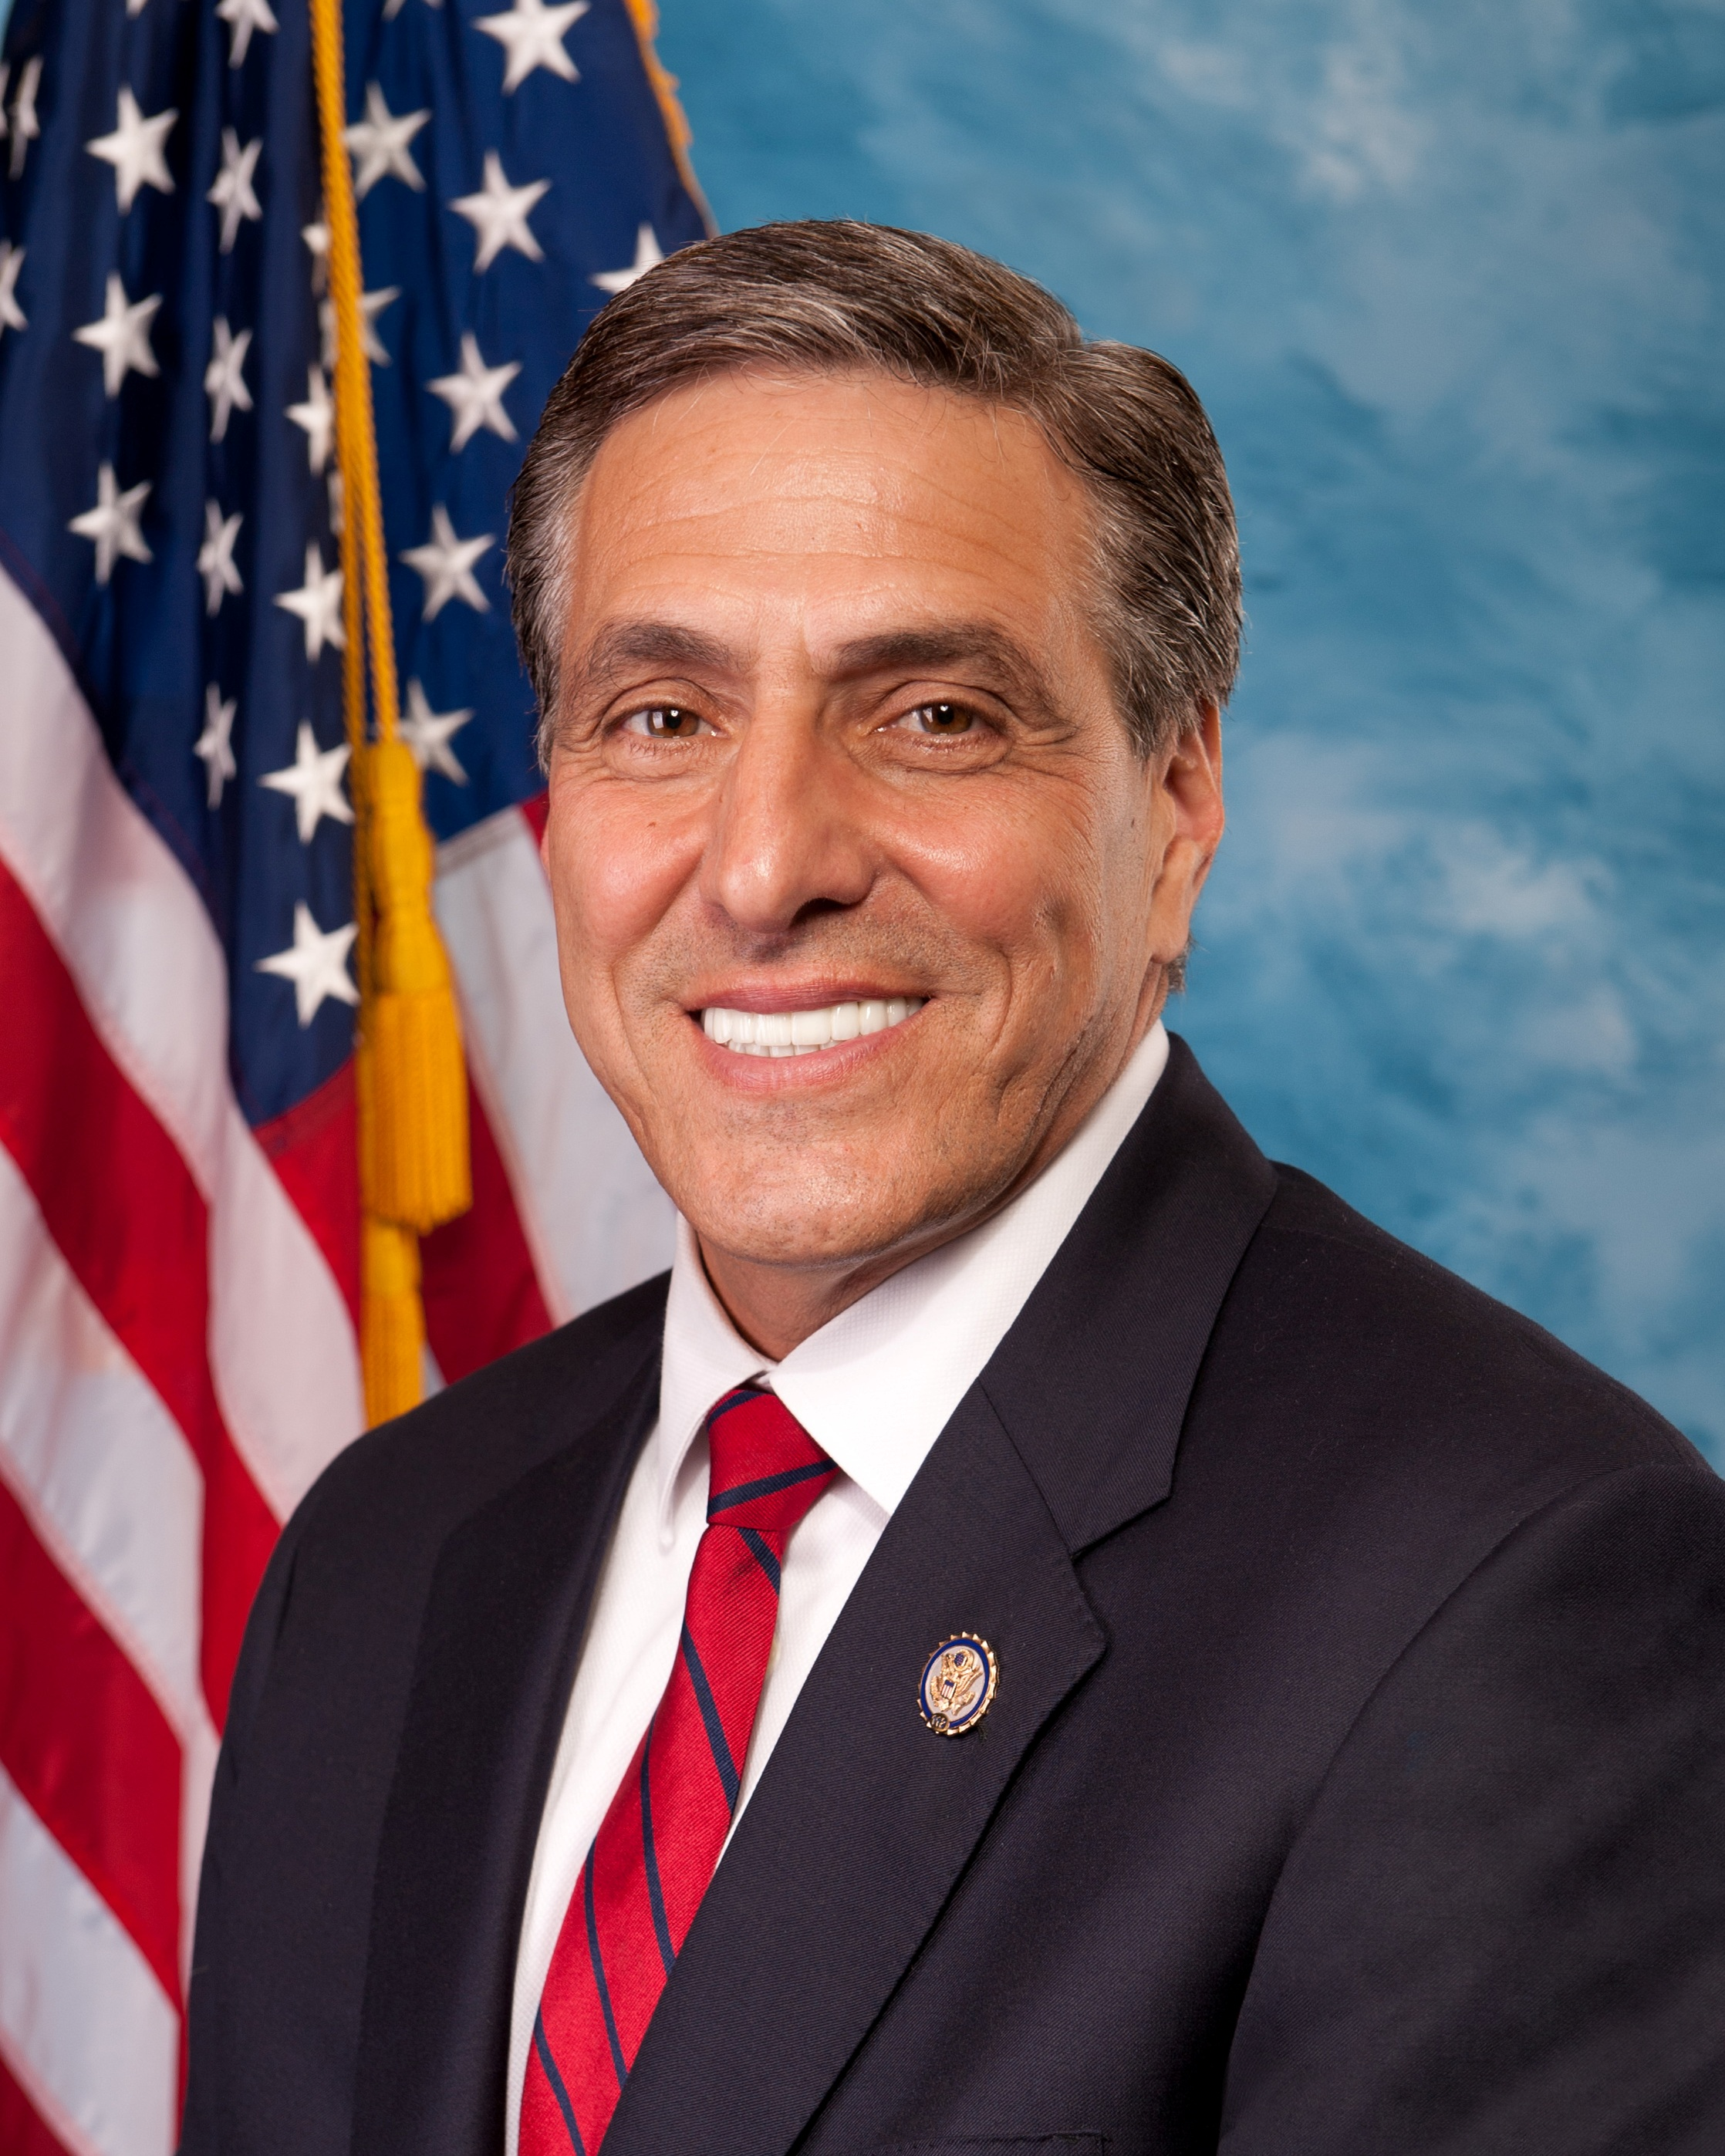 Lou_Barletta,_Official_Portrait,_112th_Congress_(2).JPG